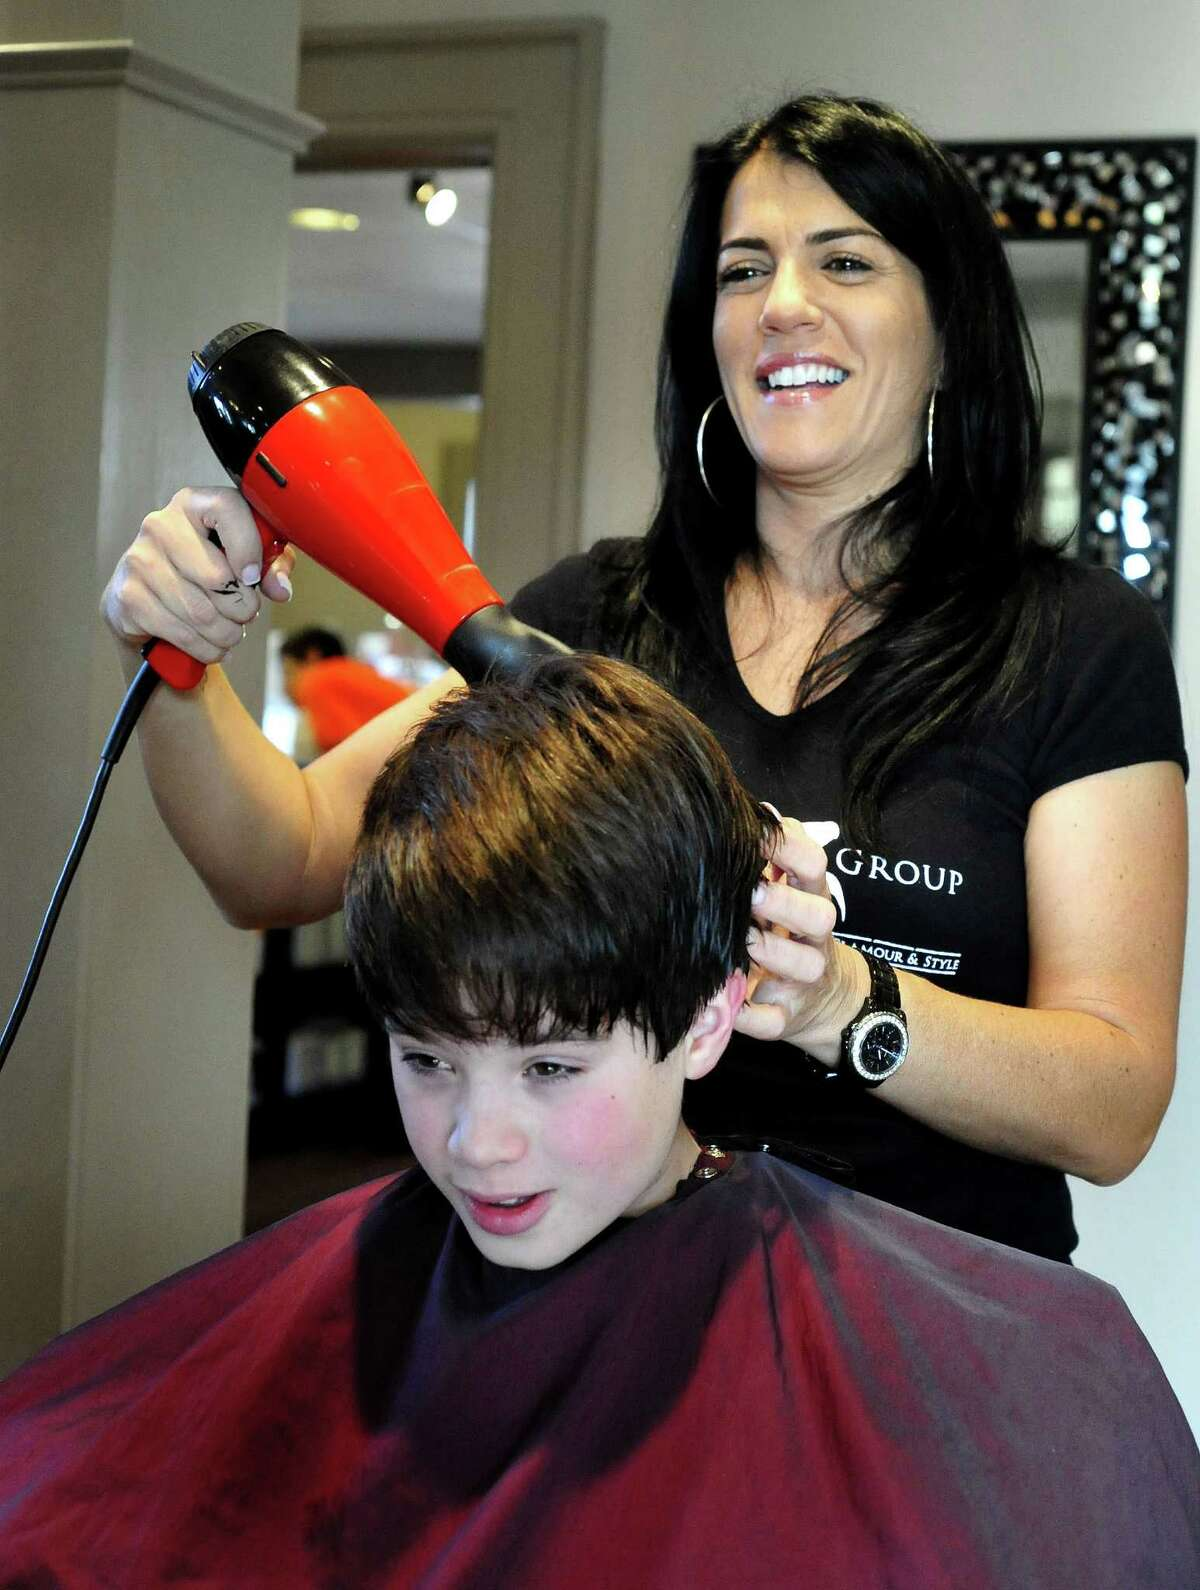 Aaron Gayle, 8, has his hair blown out by Sandy Russo during the DPZ Group event to benefit Superstorm Sandy victims in Danbury Sunday, Nov. 11, 2012.